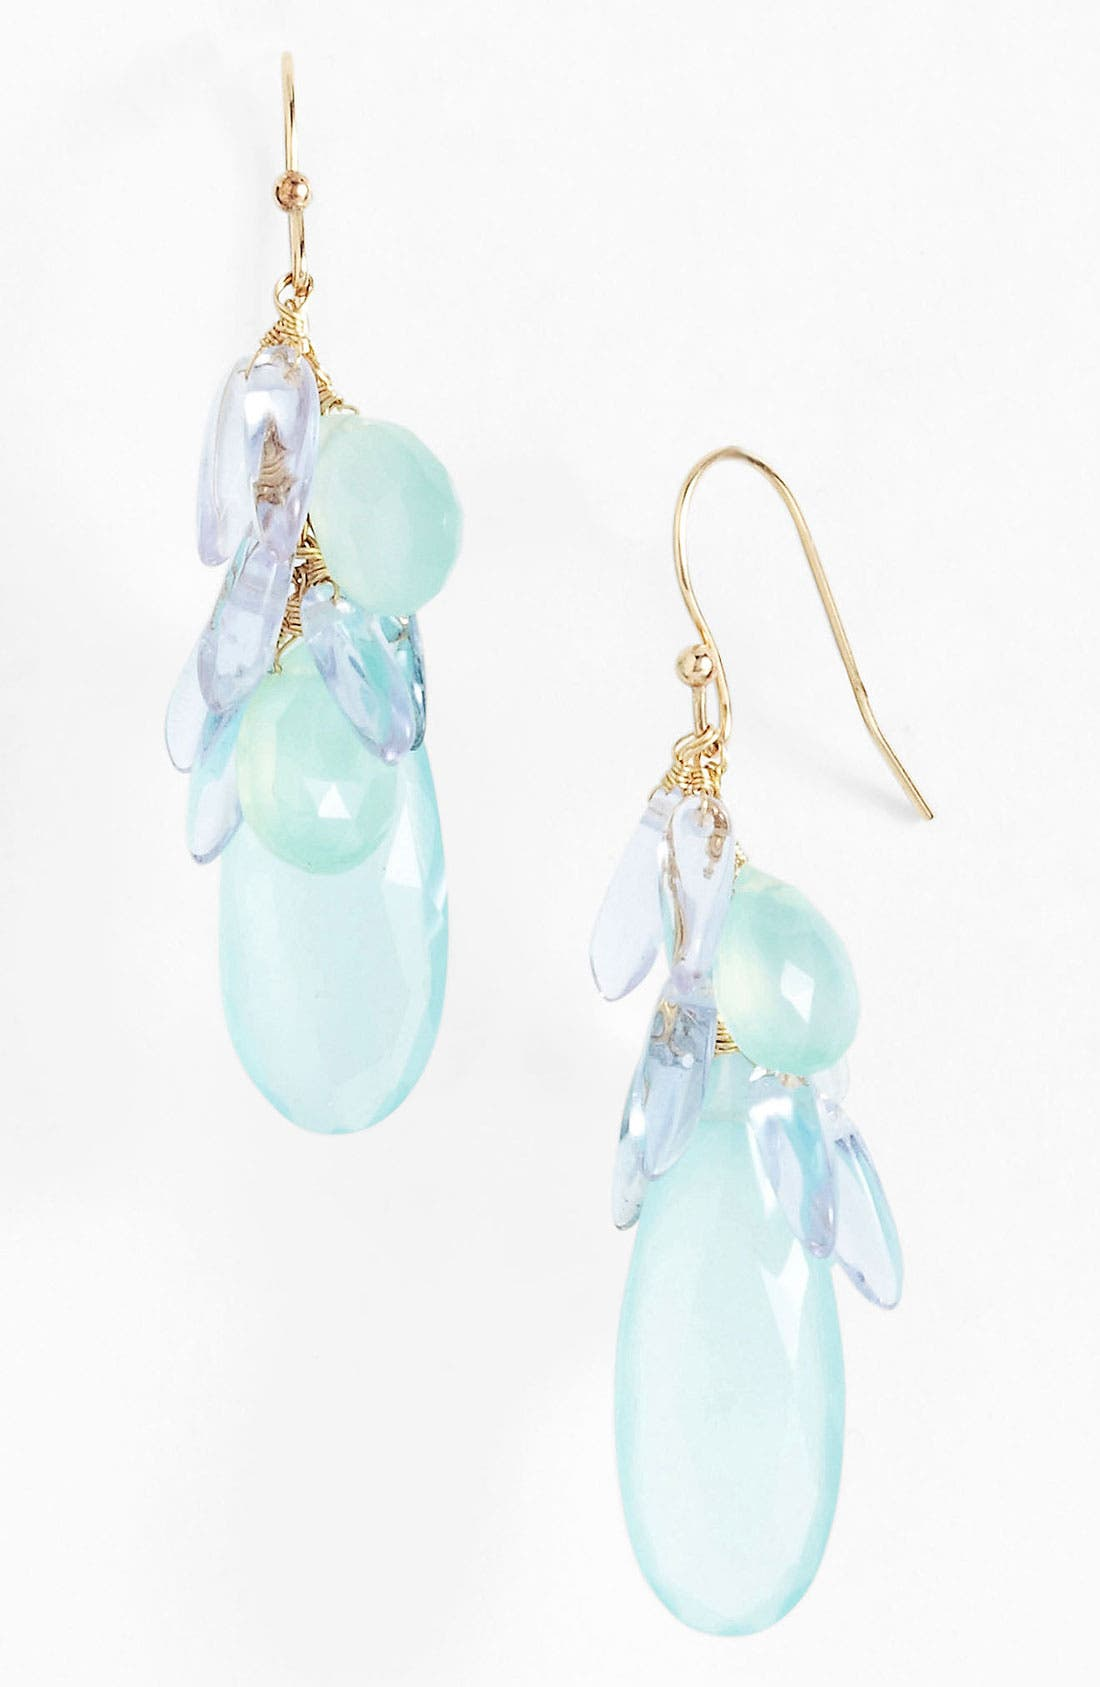 Alternate Image 1 Selected - Alexis Bittar 'Elements - Siyabona' Cluster Drop Earrings (Nordstrom Exclusive)